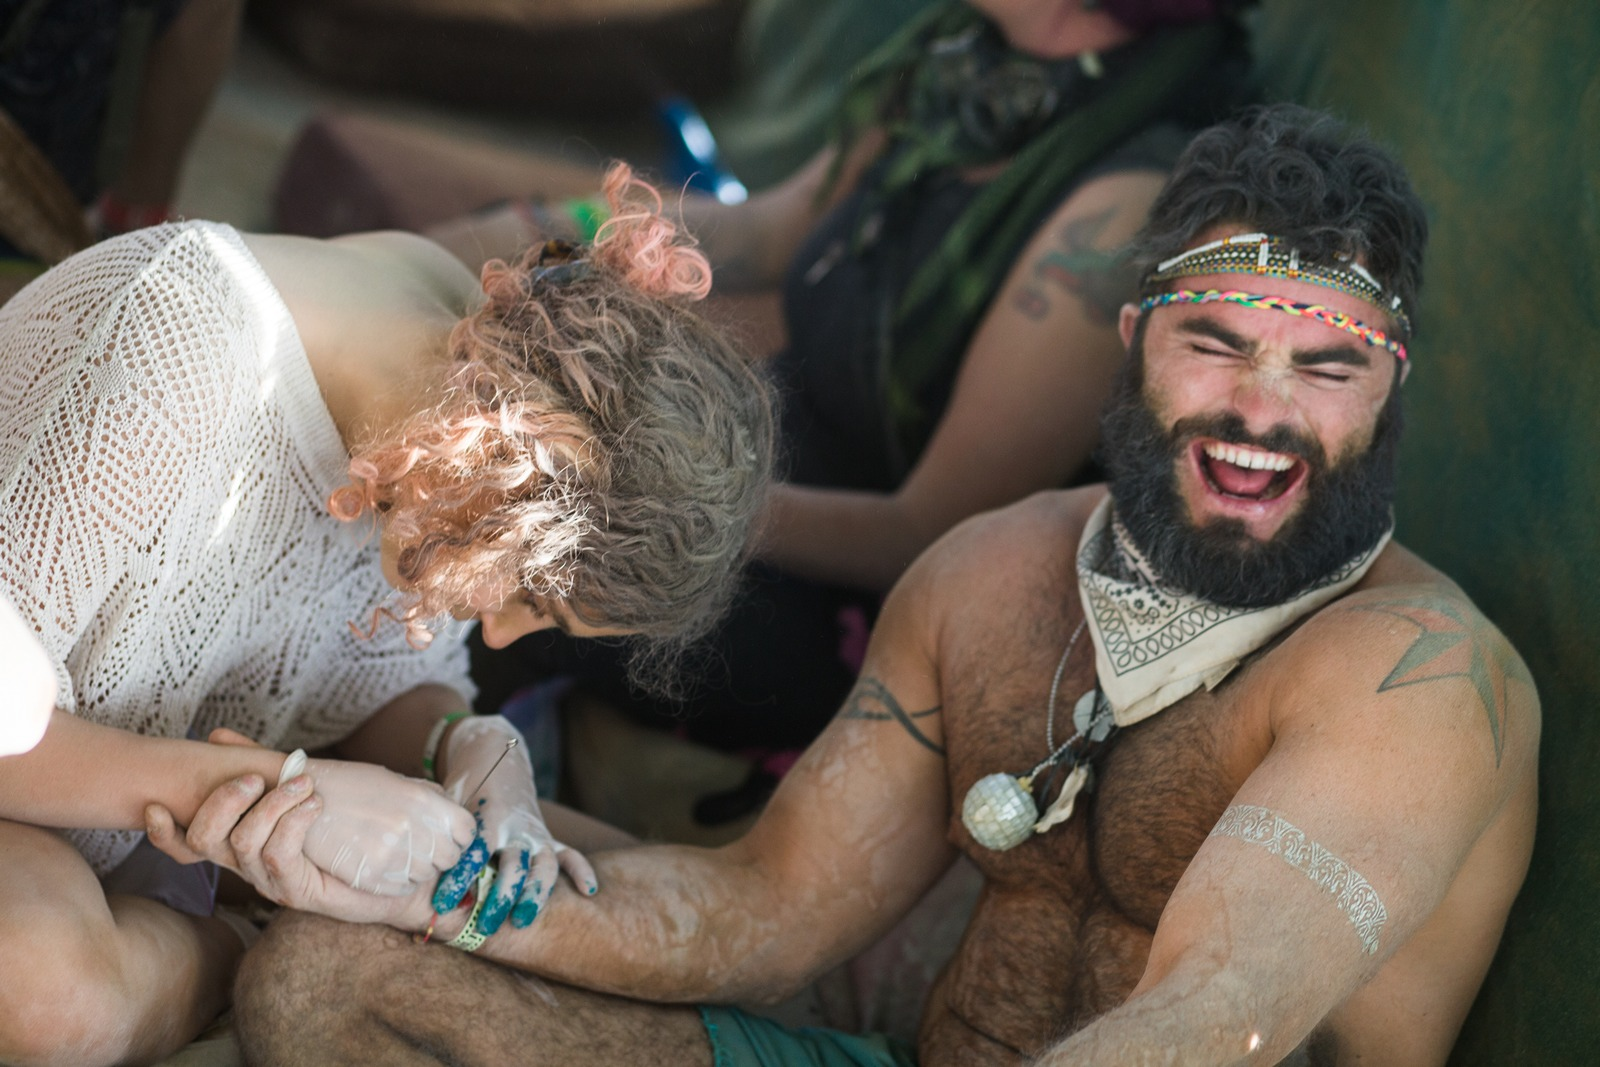 Burning Man - Getting a real tatoo in the absint bar